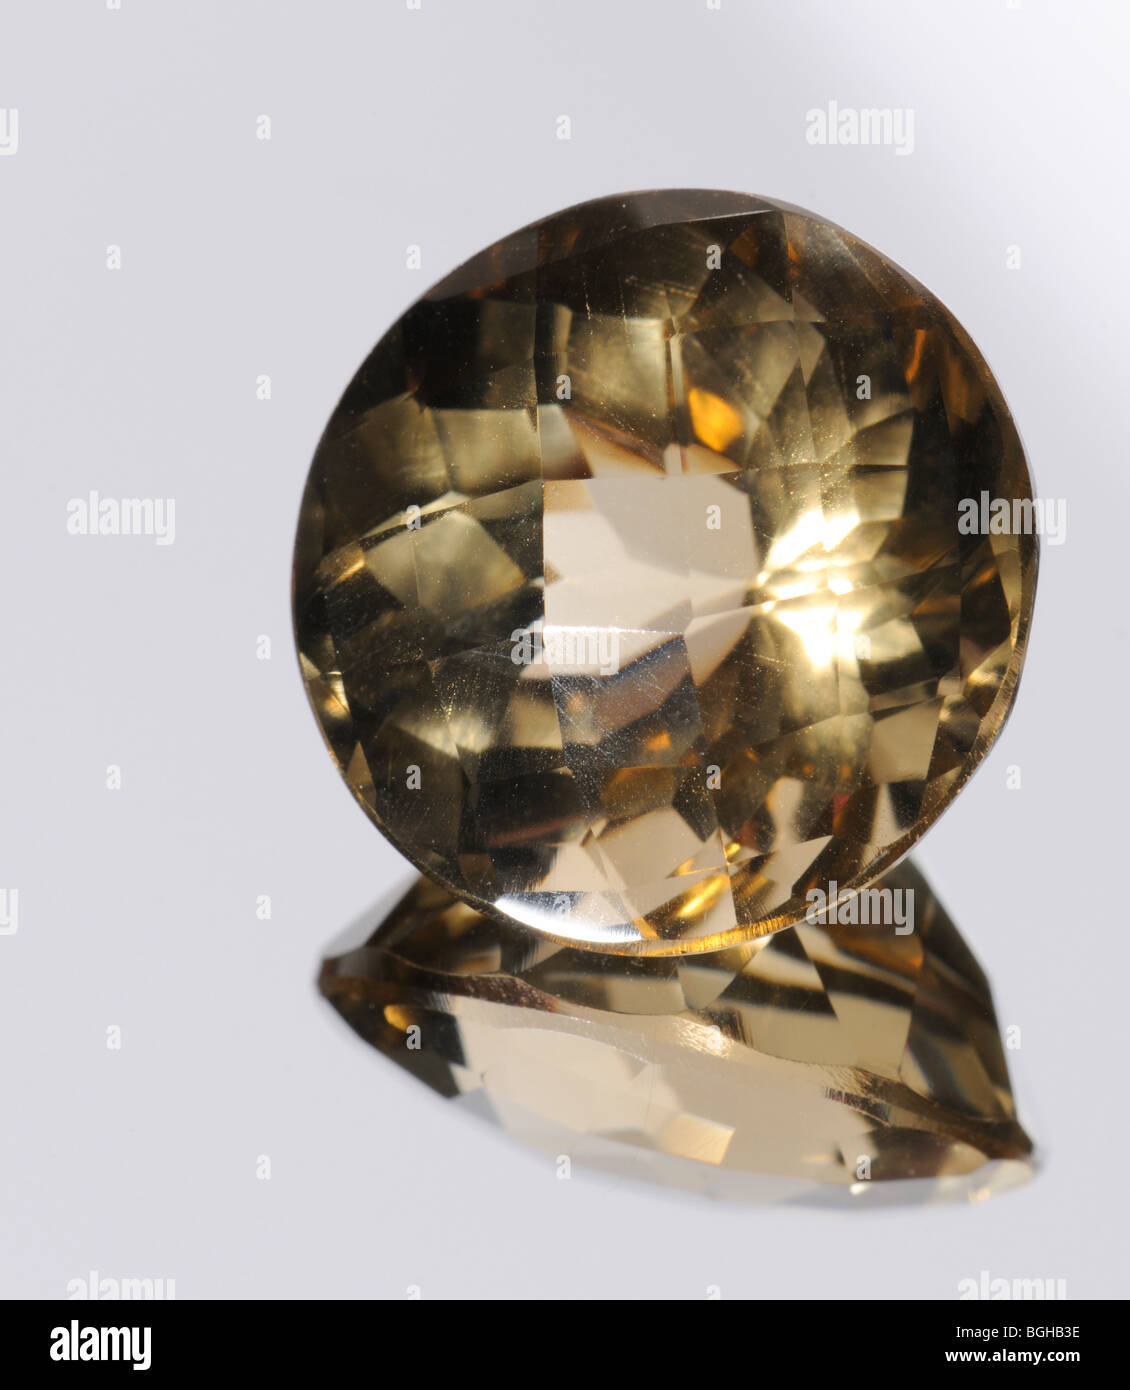 Chequerboard-cut Smoky Quartz gemstone and reflection - Stock Image